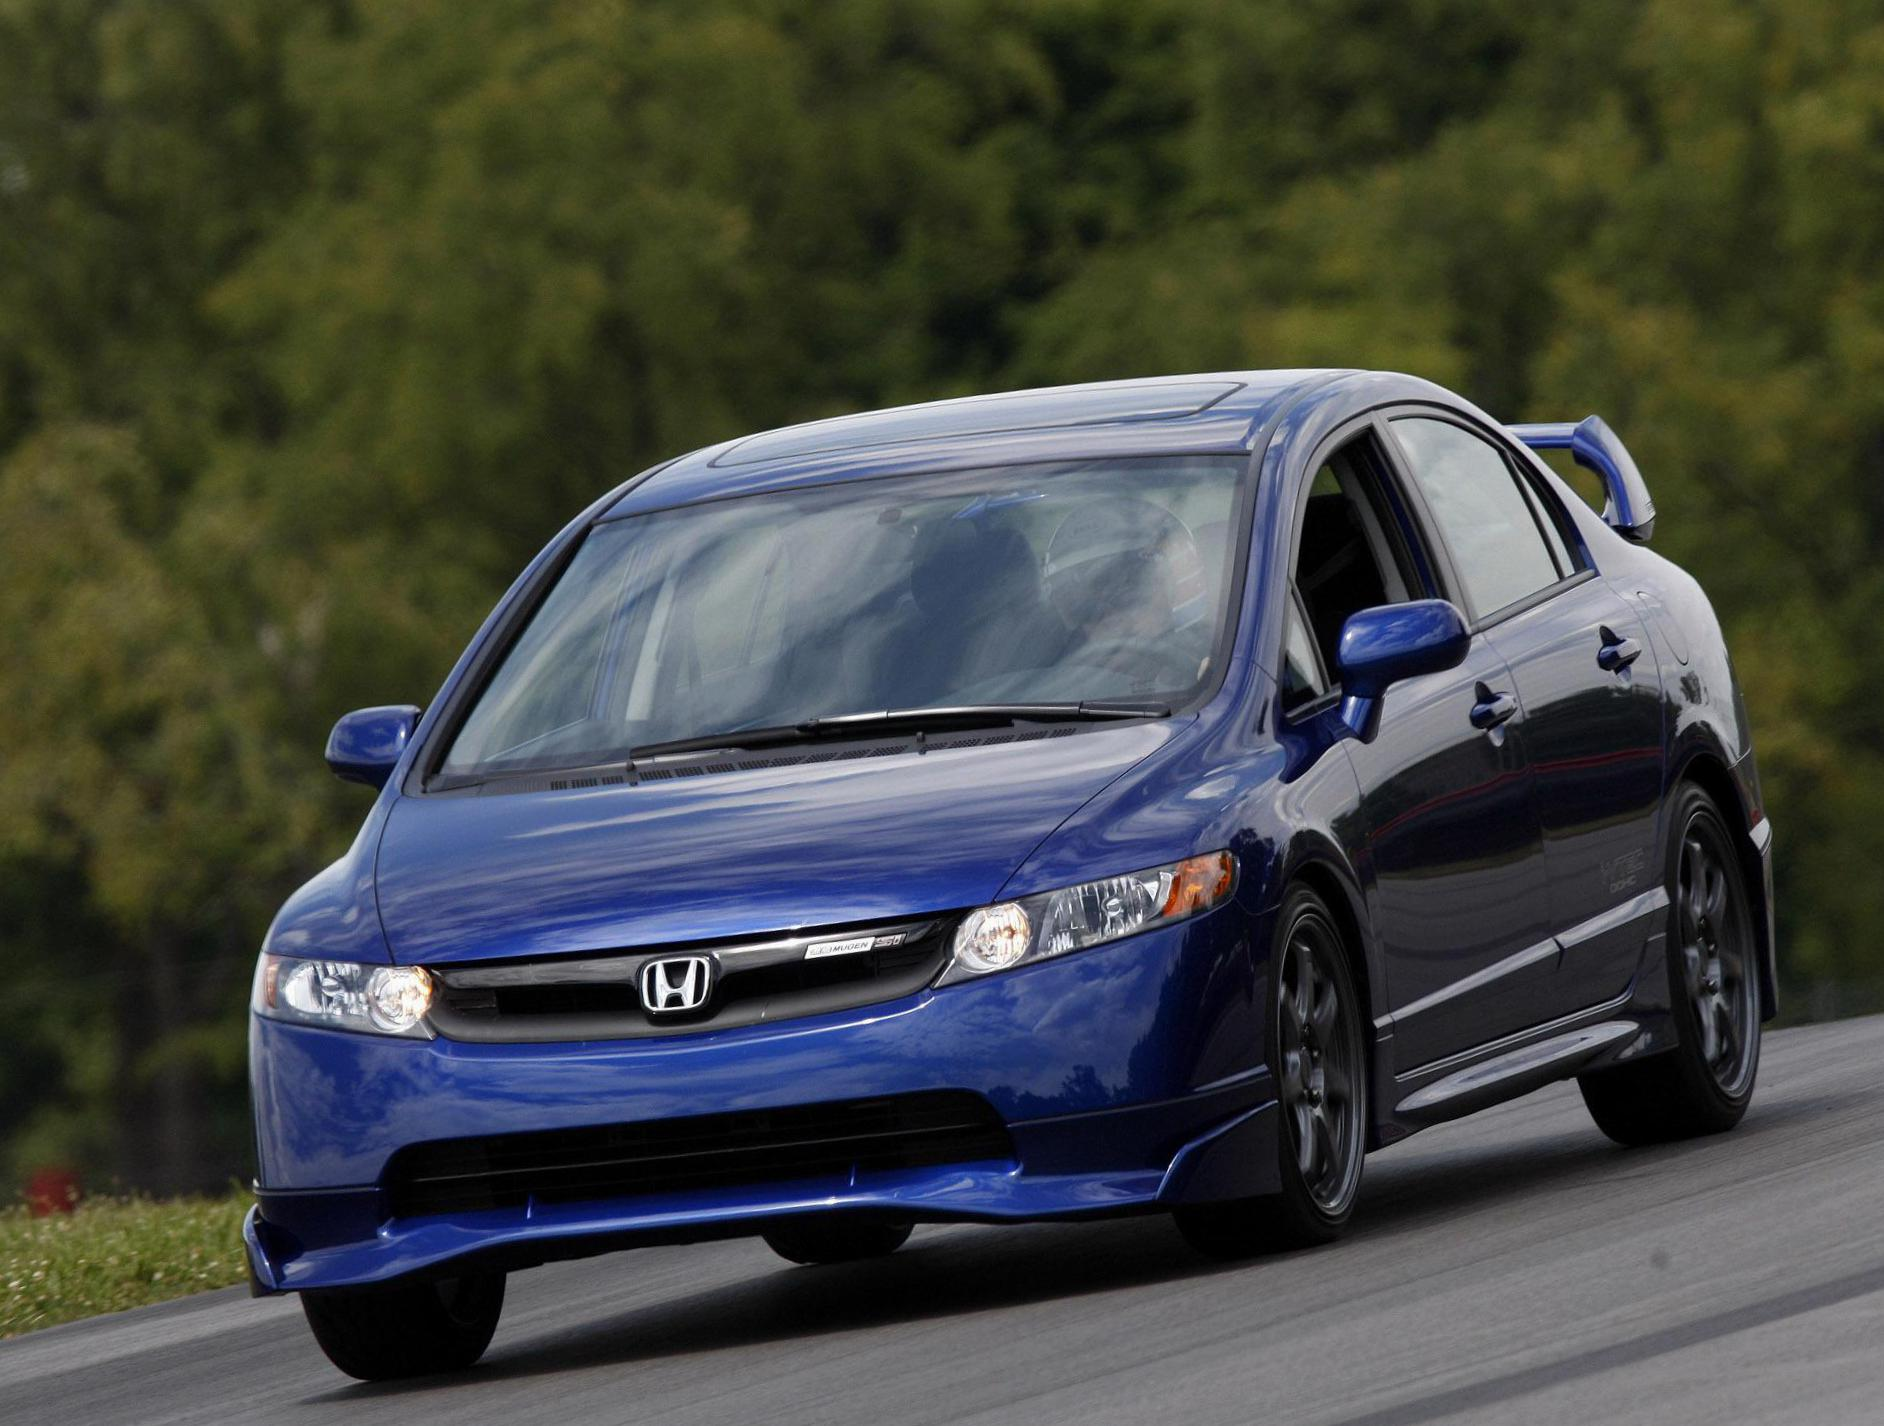 Civic Si Sedan Honda models suv